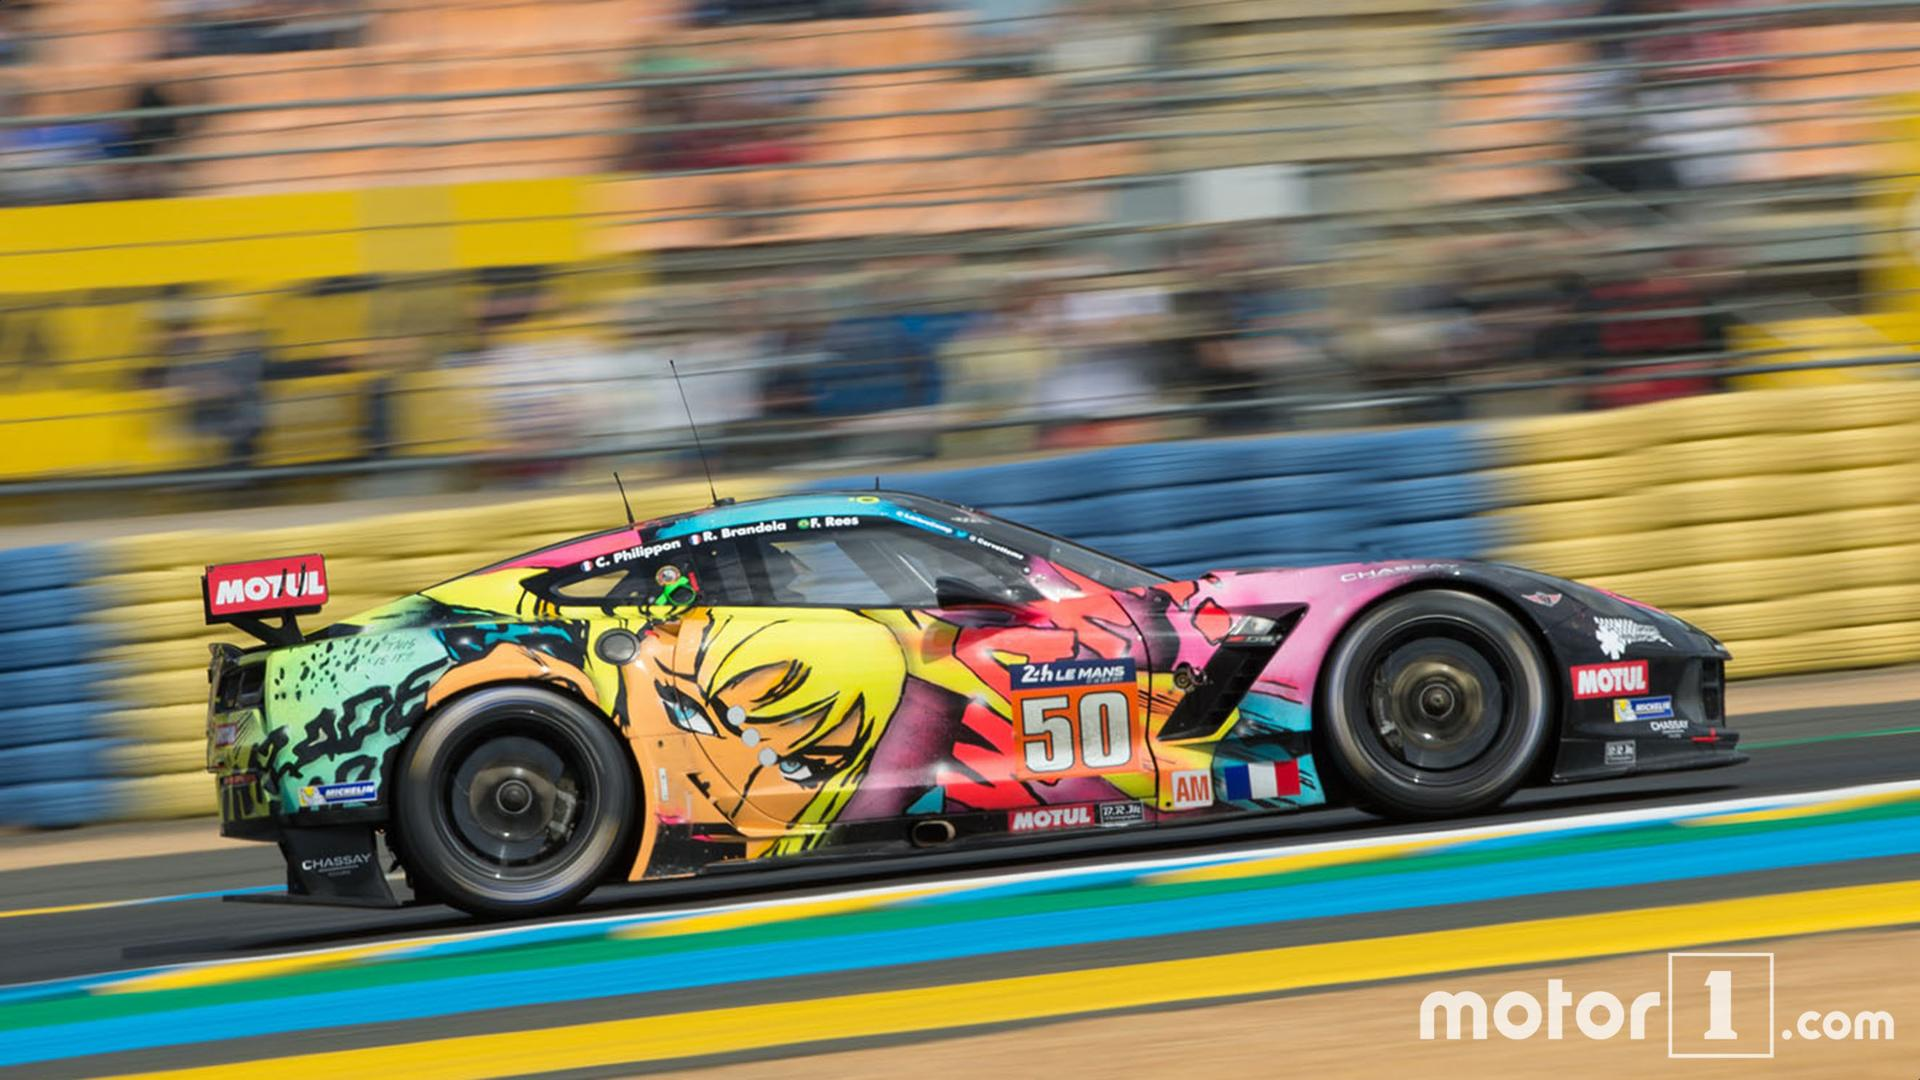 une corvette art car au d part des 24 heures du mans. Black Bedroom Furniture Sets. Home Design Ideas